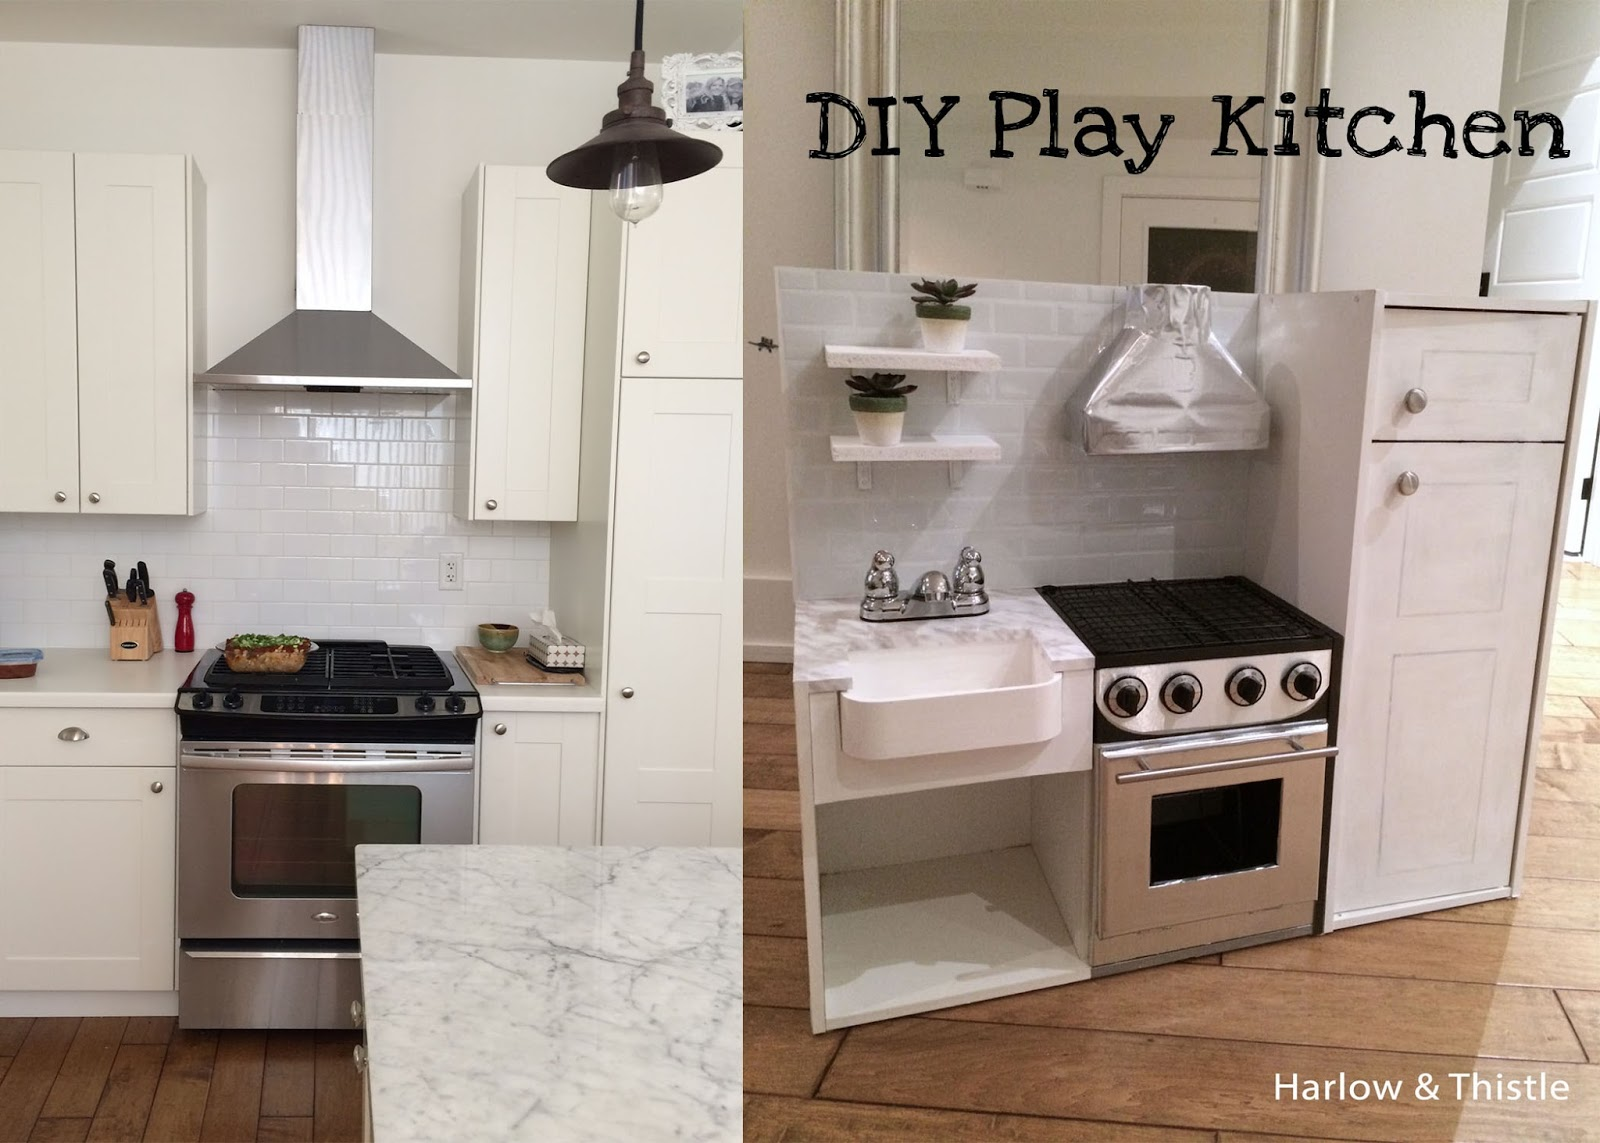 Industrial-Looking Play Kitchen